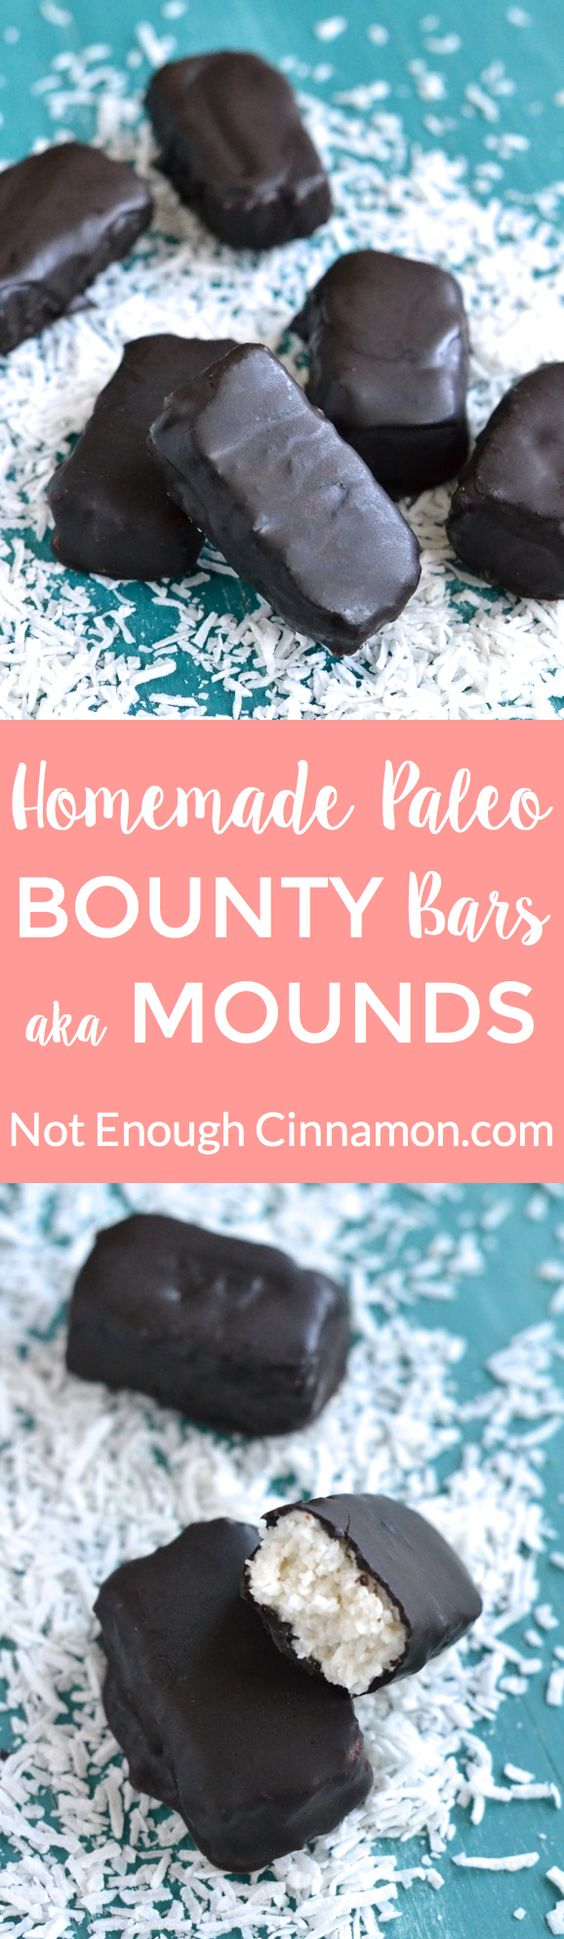 homemade bounty bars aka mounds